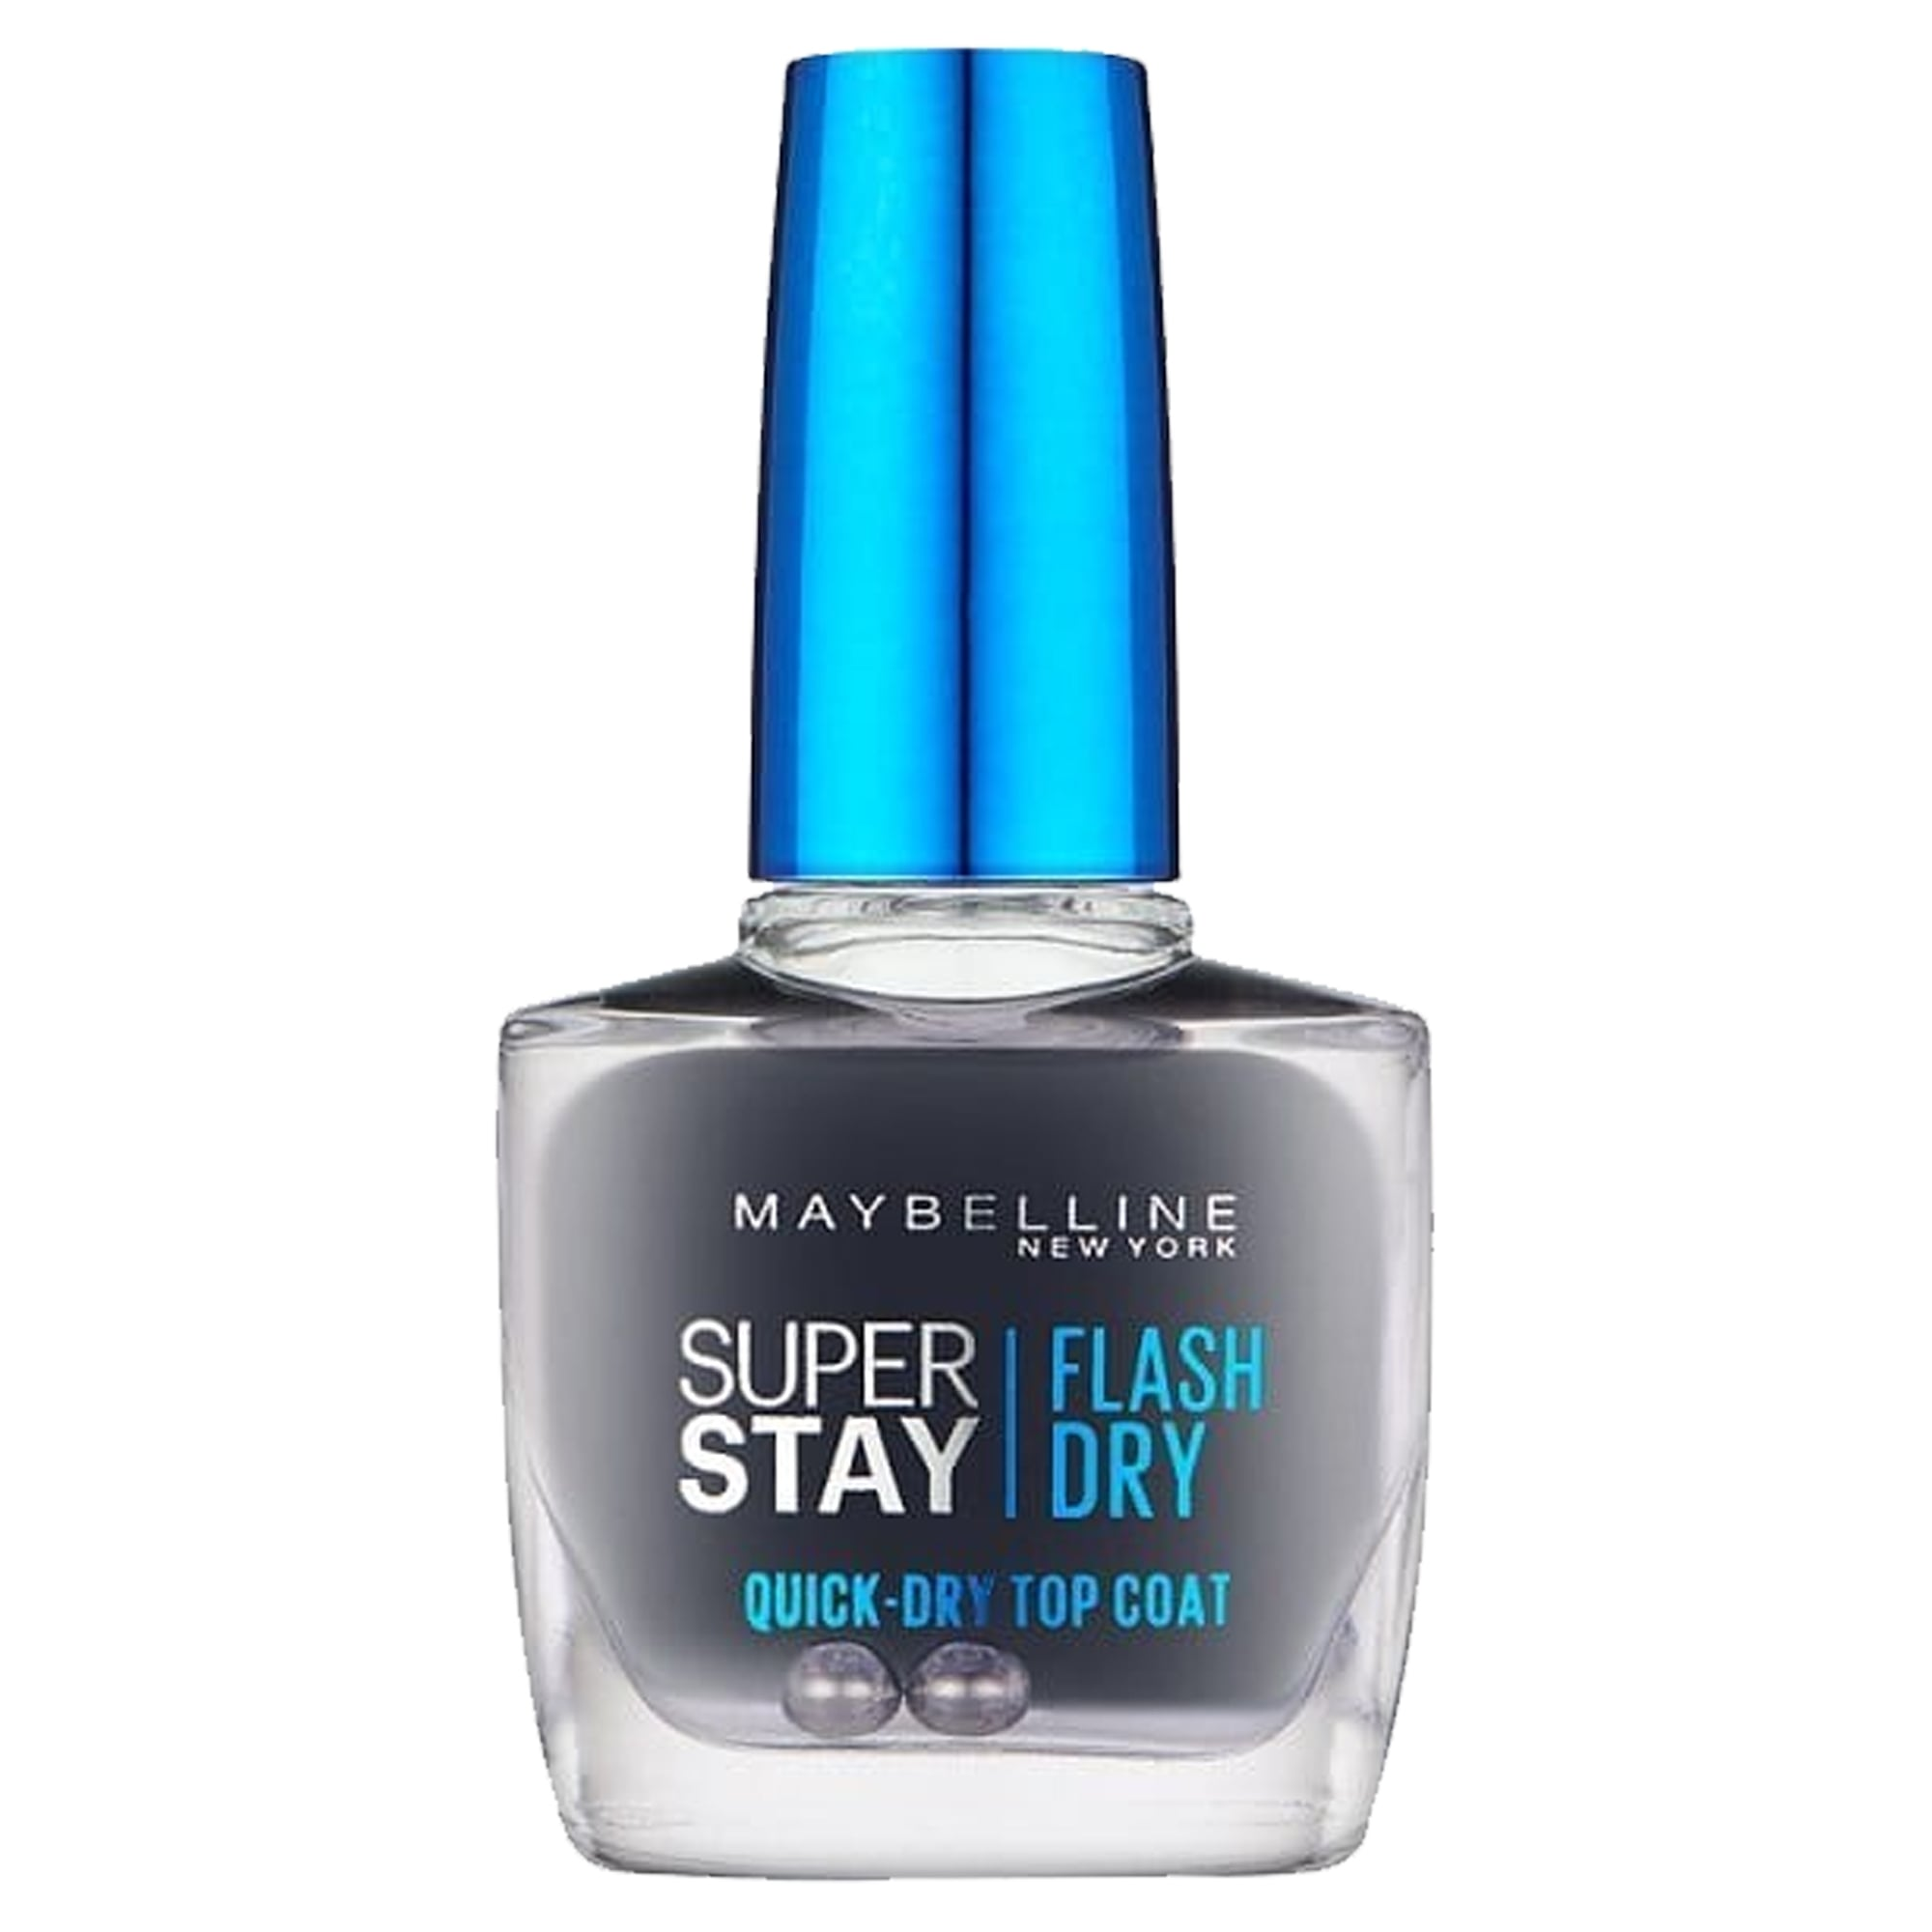 Maybelline Forever Strong Super Stay - Flash Dry - Quick Dry Topcoat